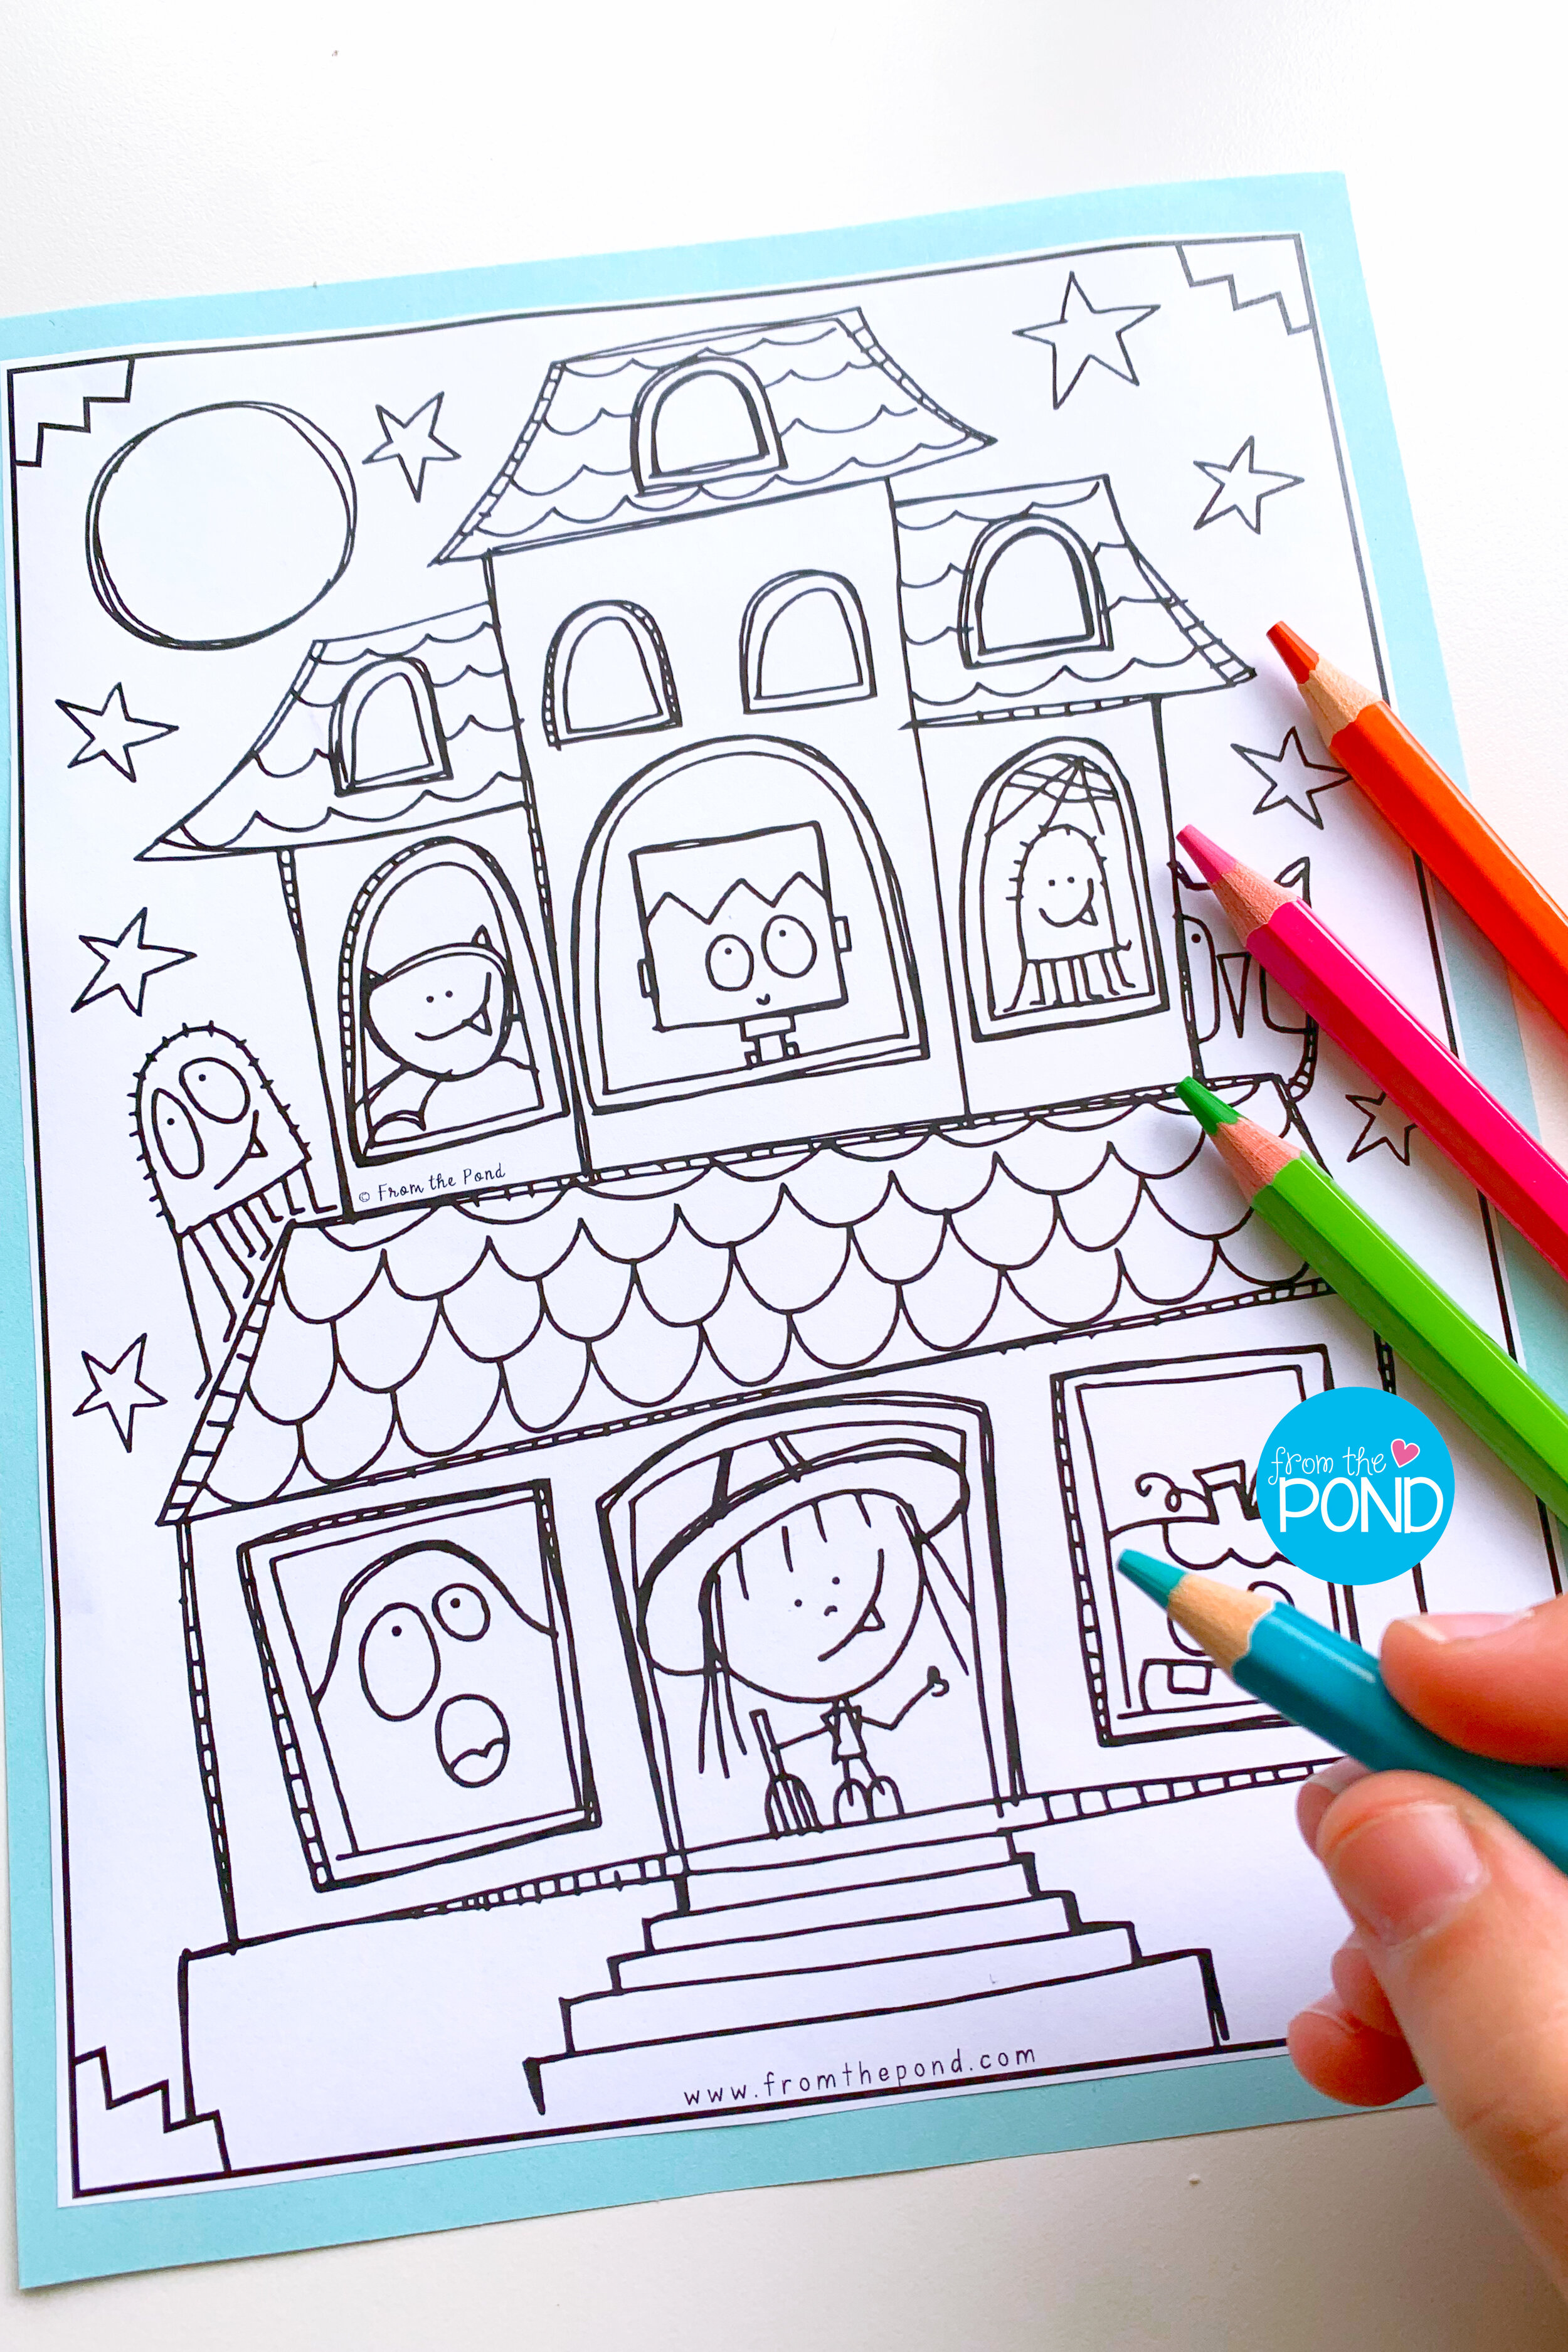 Haunted House Coloring Page Pond Coloring Club